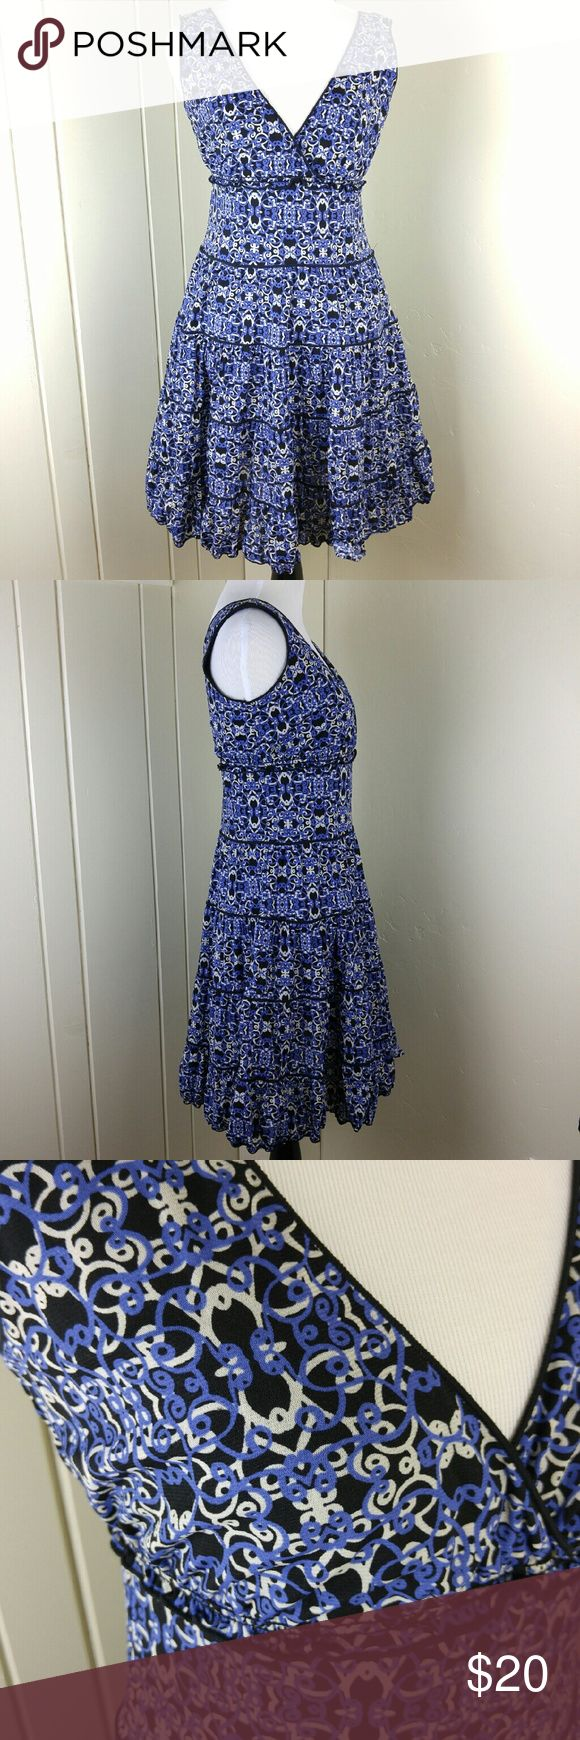 """Sweet and feminine patterned dress A bluish purple, cream, and black scroll patterned dress in great condition! Nylon. Lined. Pic 4 shows the back. 35"""" length. Stretches. Style & Co Dresses"""